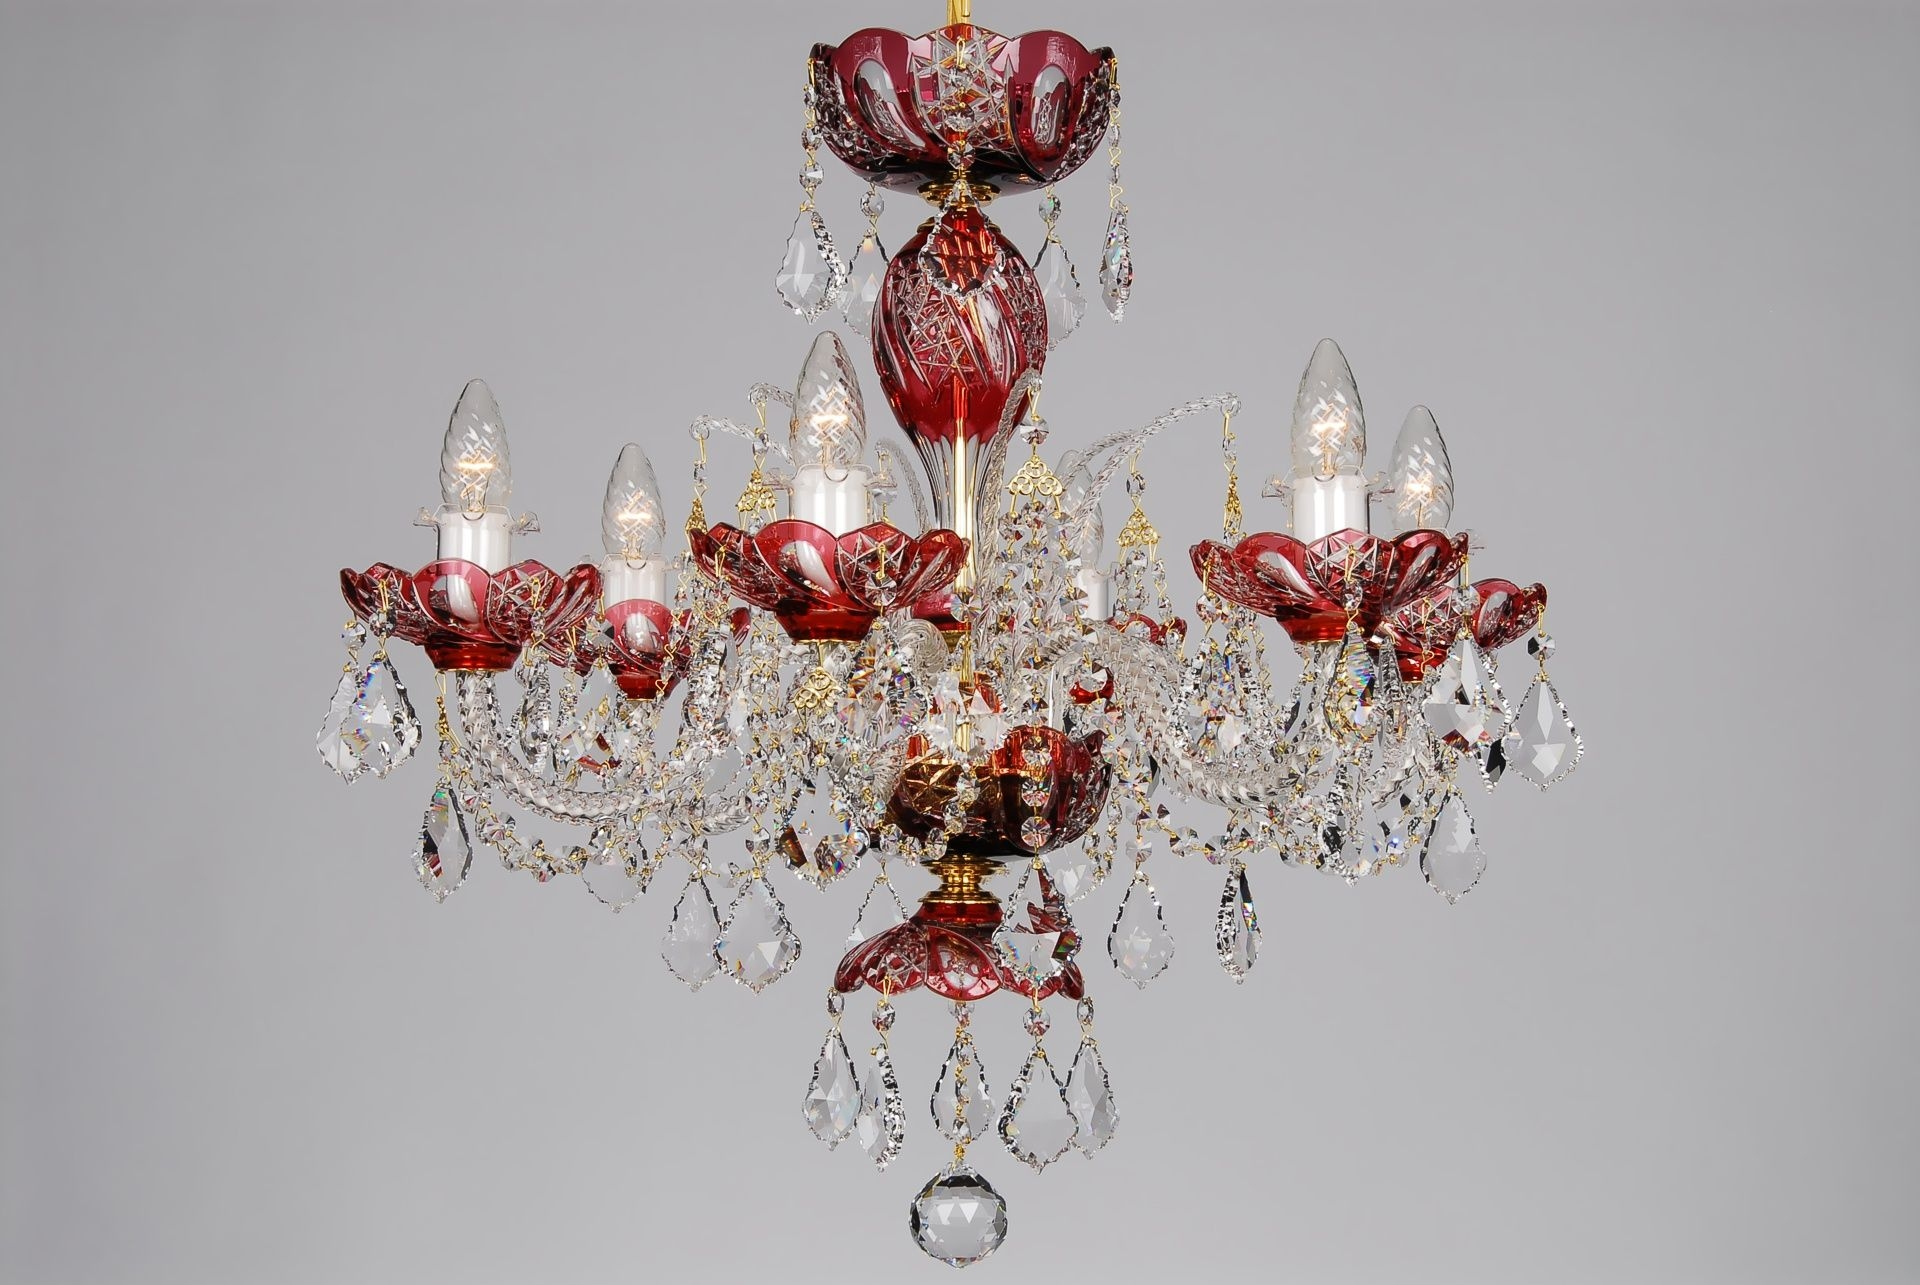 A Small Red Crystal Chandelier Decorated With Swarovski Trimmings Regarding Small Red Chandelier (Image 4 of 15)